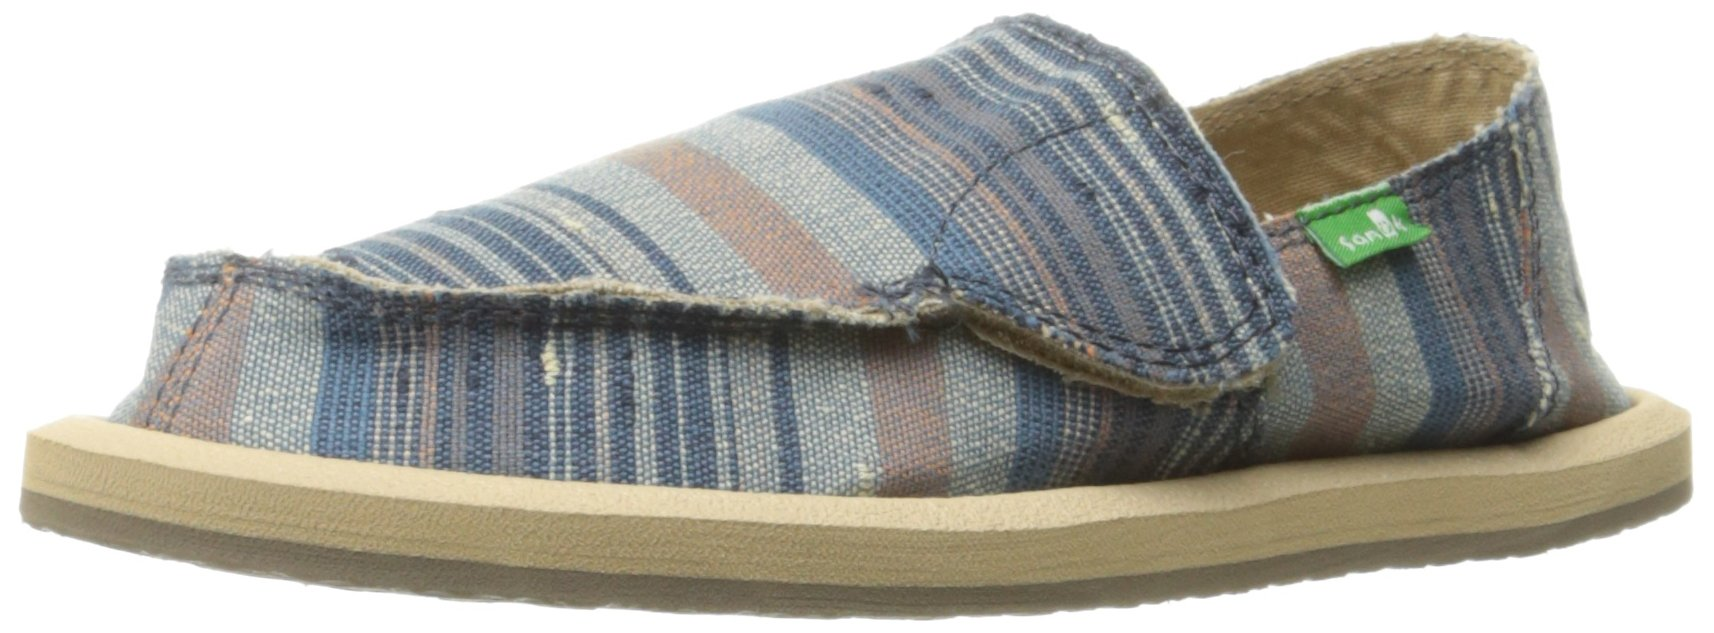 Sanuk Kids Boys' Vagabond Tribal Loafer, Vintage Denim Stripe, 11 M US Little Kid